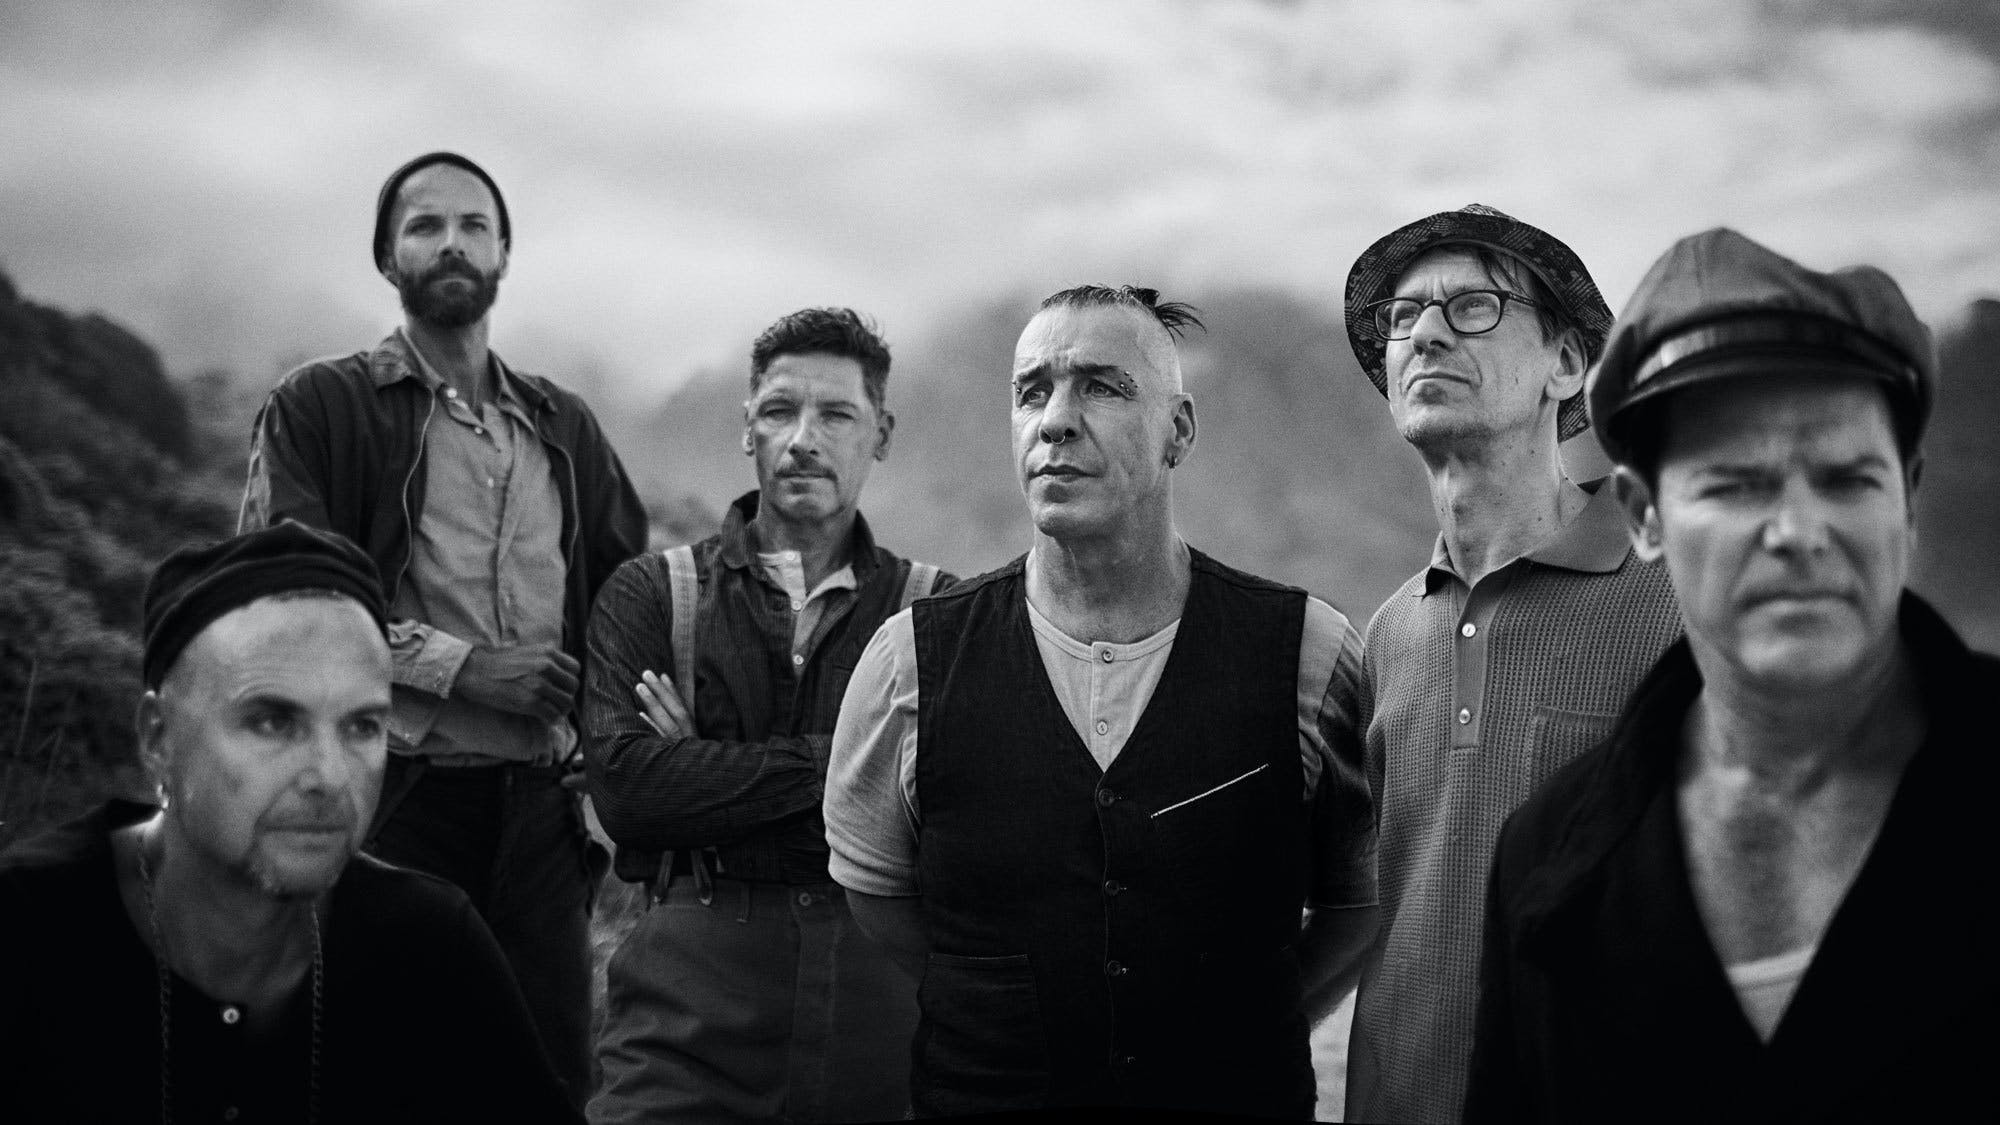 Rammstein Are Teasing Two Brand-New Songs: Radio And Zeig Dich